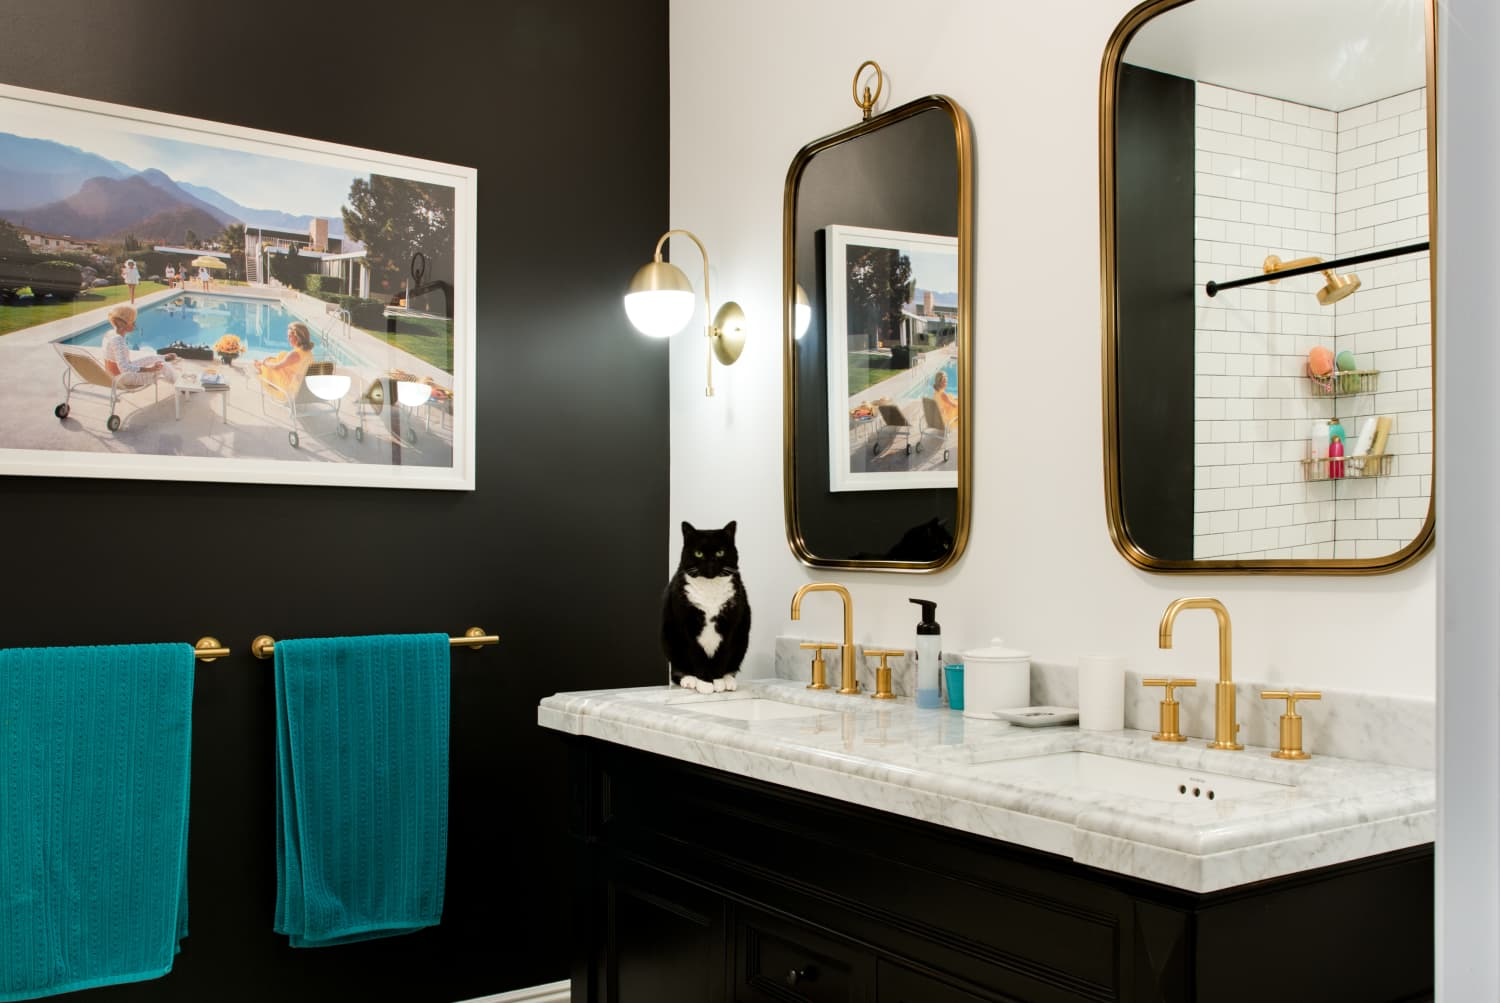 It's Official: 2020 is All About Embracing Black Bathrooms